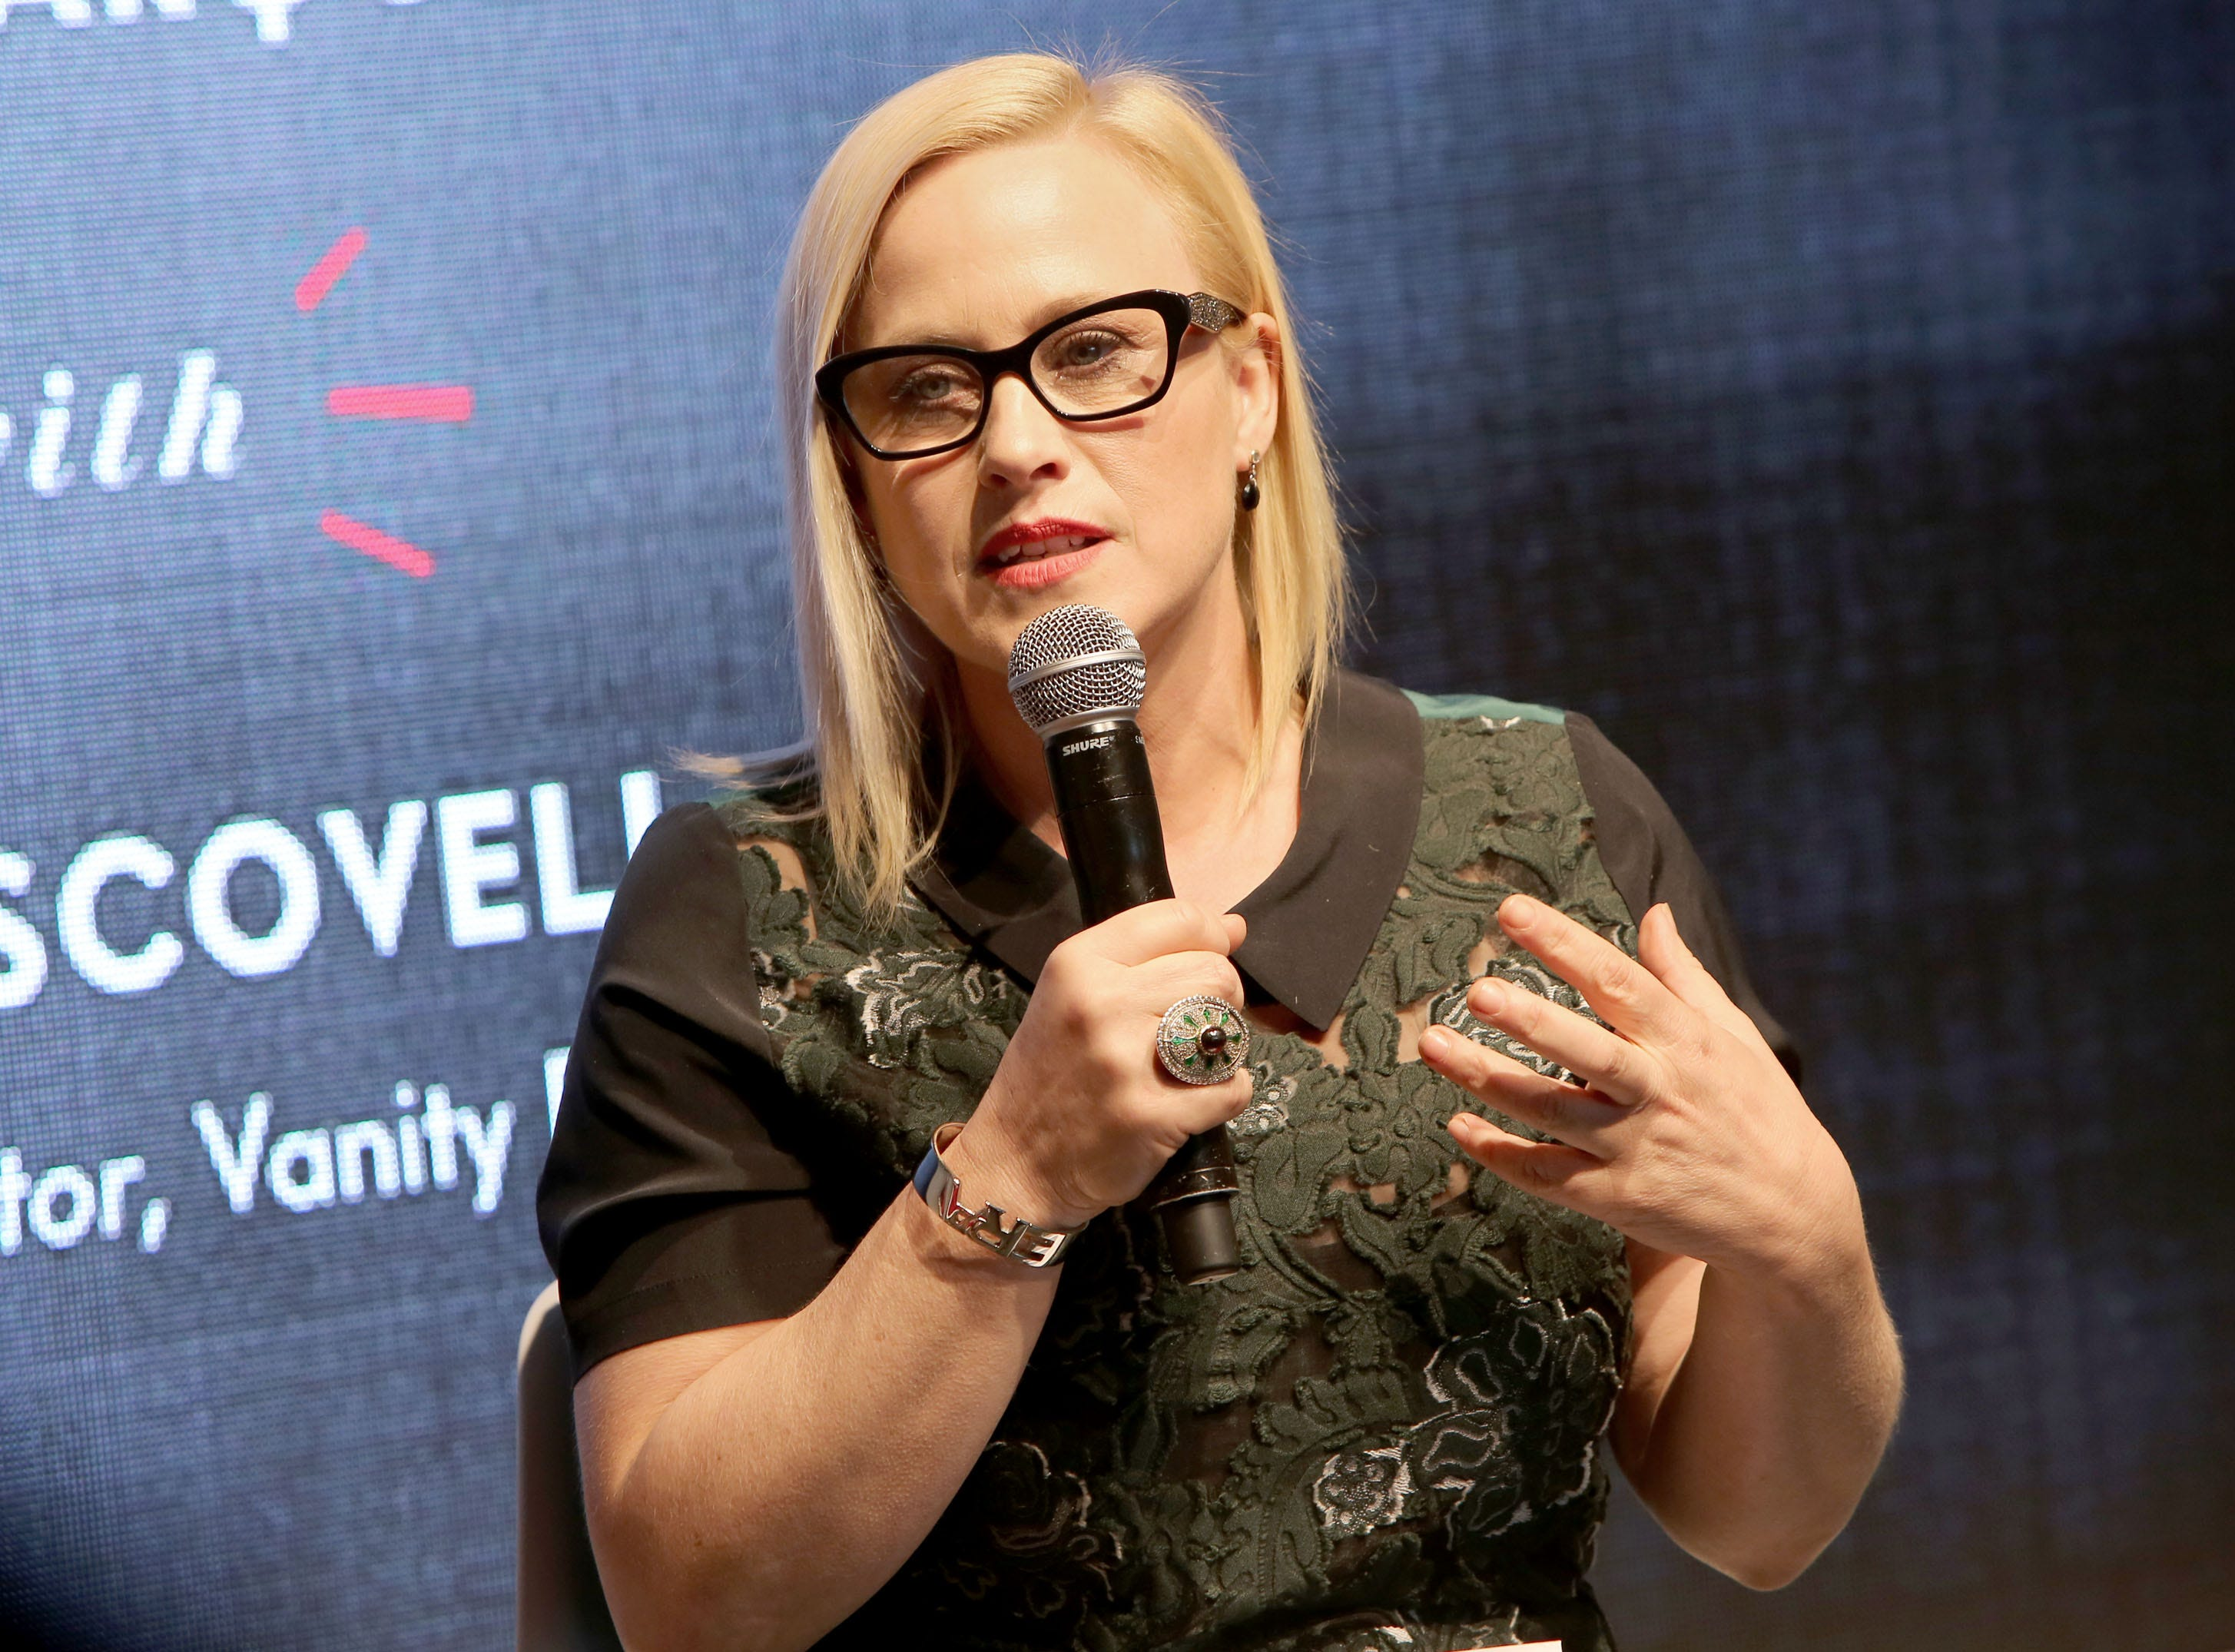 CULVER CITY, CA - FEBRUARY 26:  Founder and Oscar-winning actress Patricia Arquette speaks onstage during the 'Equal Means Equal Conversation' at the 2016 Vanity Fair Social Club #VFSC for Oscar Week at PLATFORM on February 26, 2016 in Culver City, California.  (Photo by Rachel Murray/Getty Images for Vanity Fair) ORG XMIT: 605422887 ORIG FILE ID: 512560886